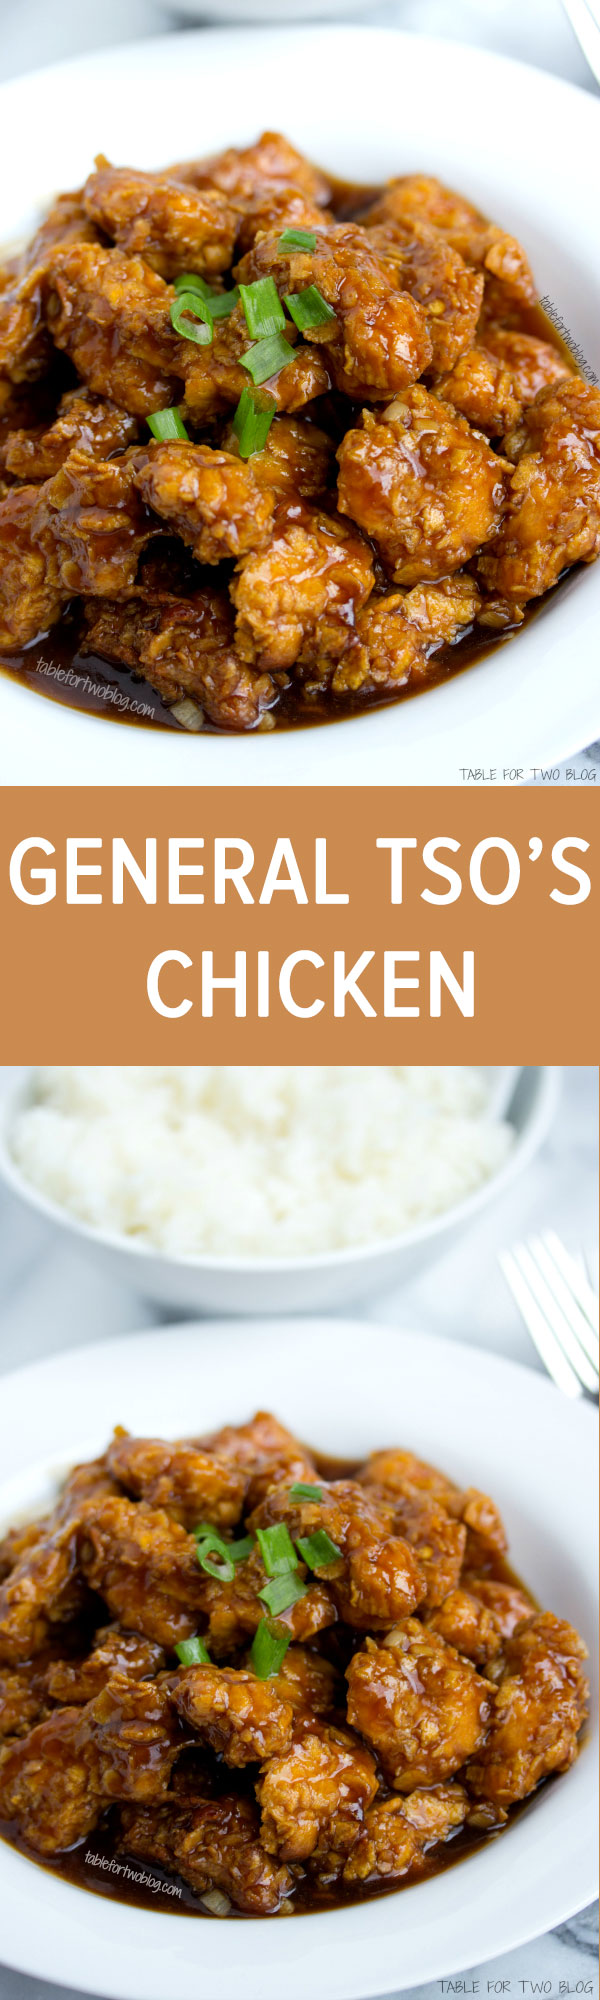 Take-Out, Fake-Out: Lightened Up General Tso Chicken from www.tablefortwoblog.com